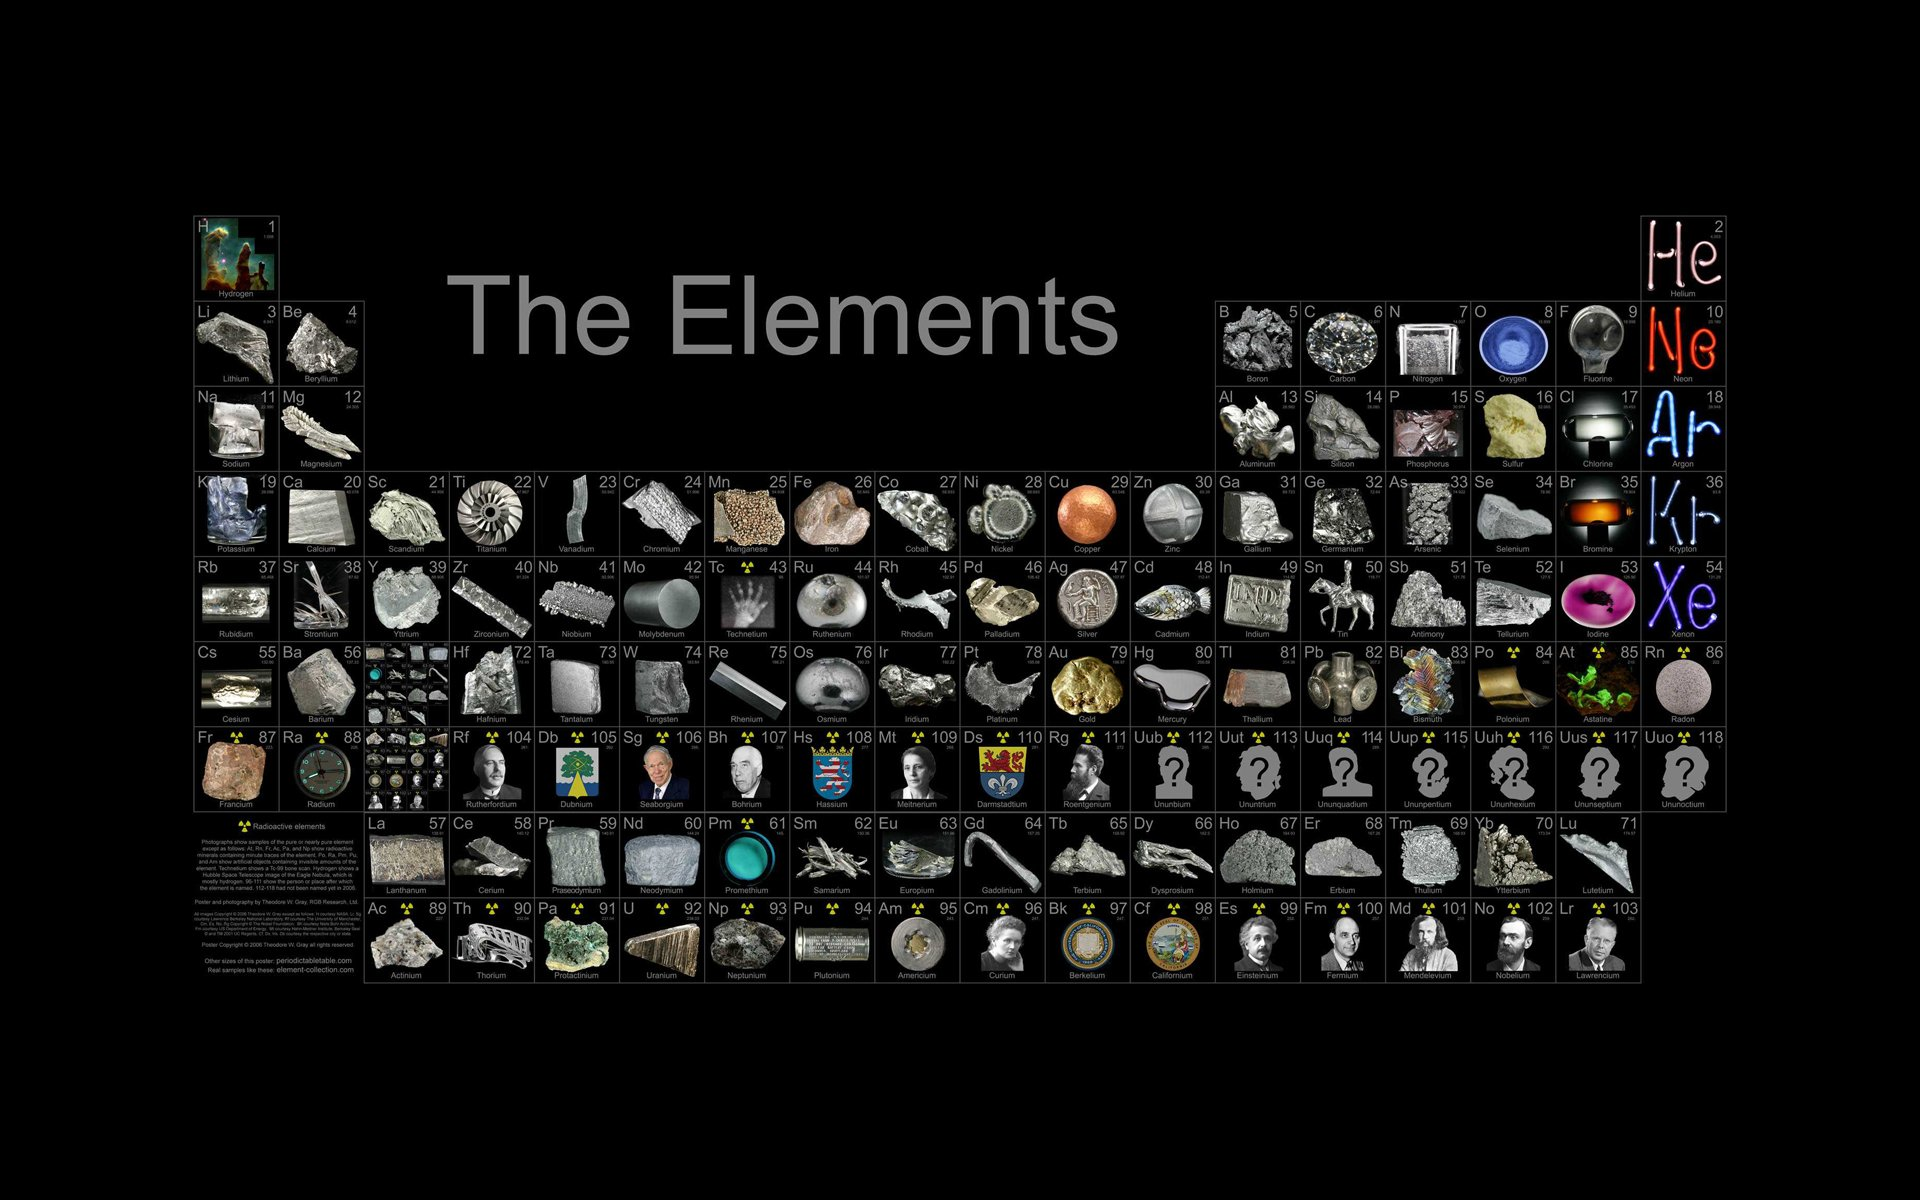 element-a-substance-that-cant-be-separated-into-a-simpler-form-See-periodic-table-of-elements-wallpaper-wp3605344